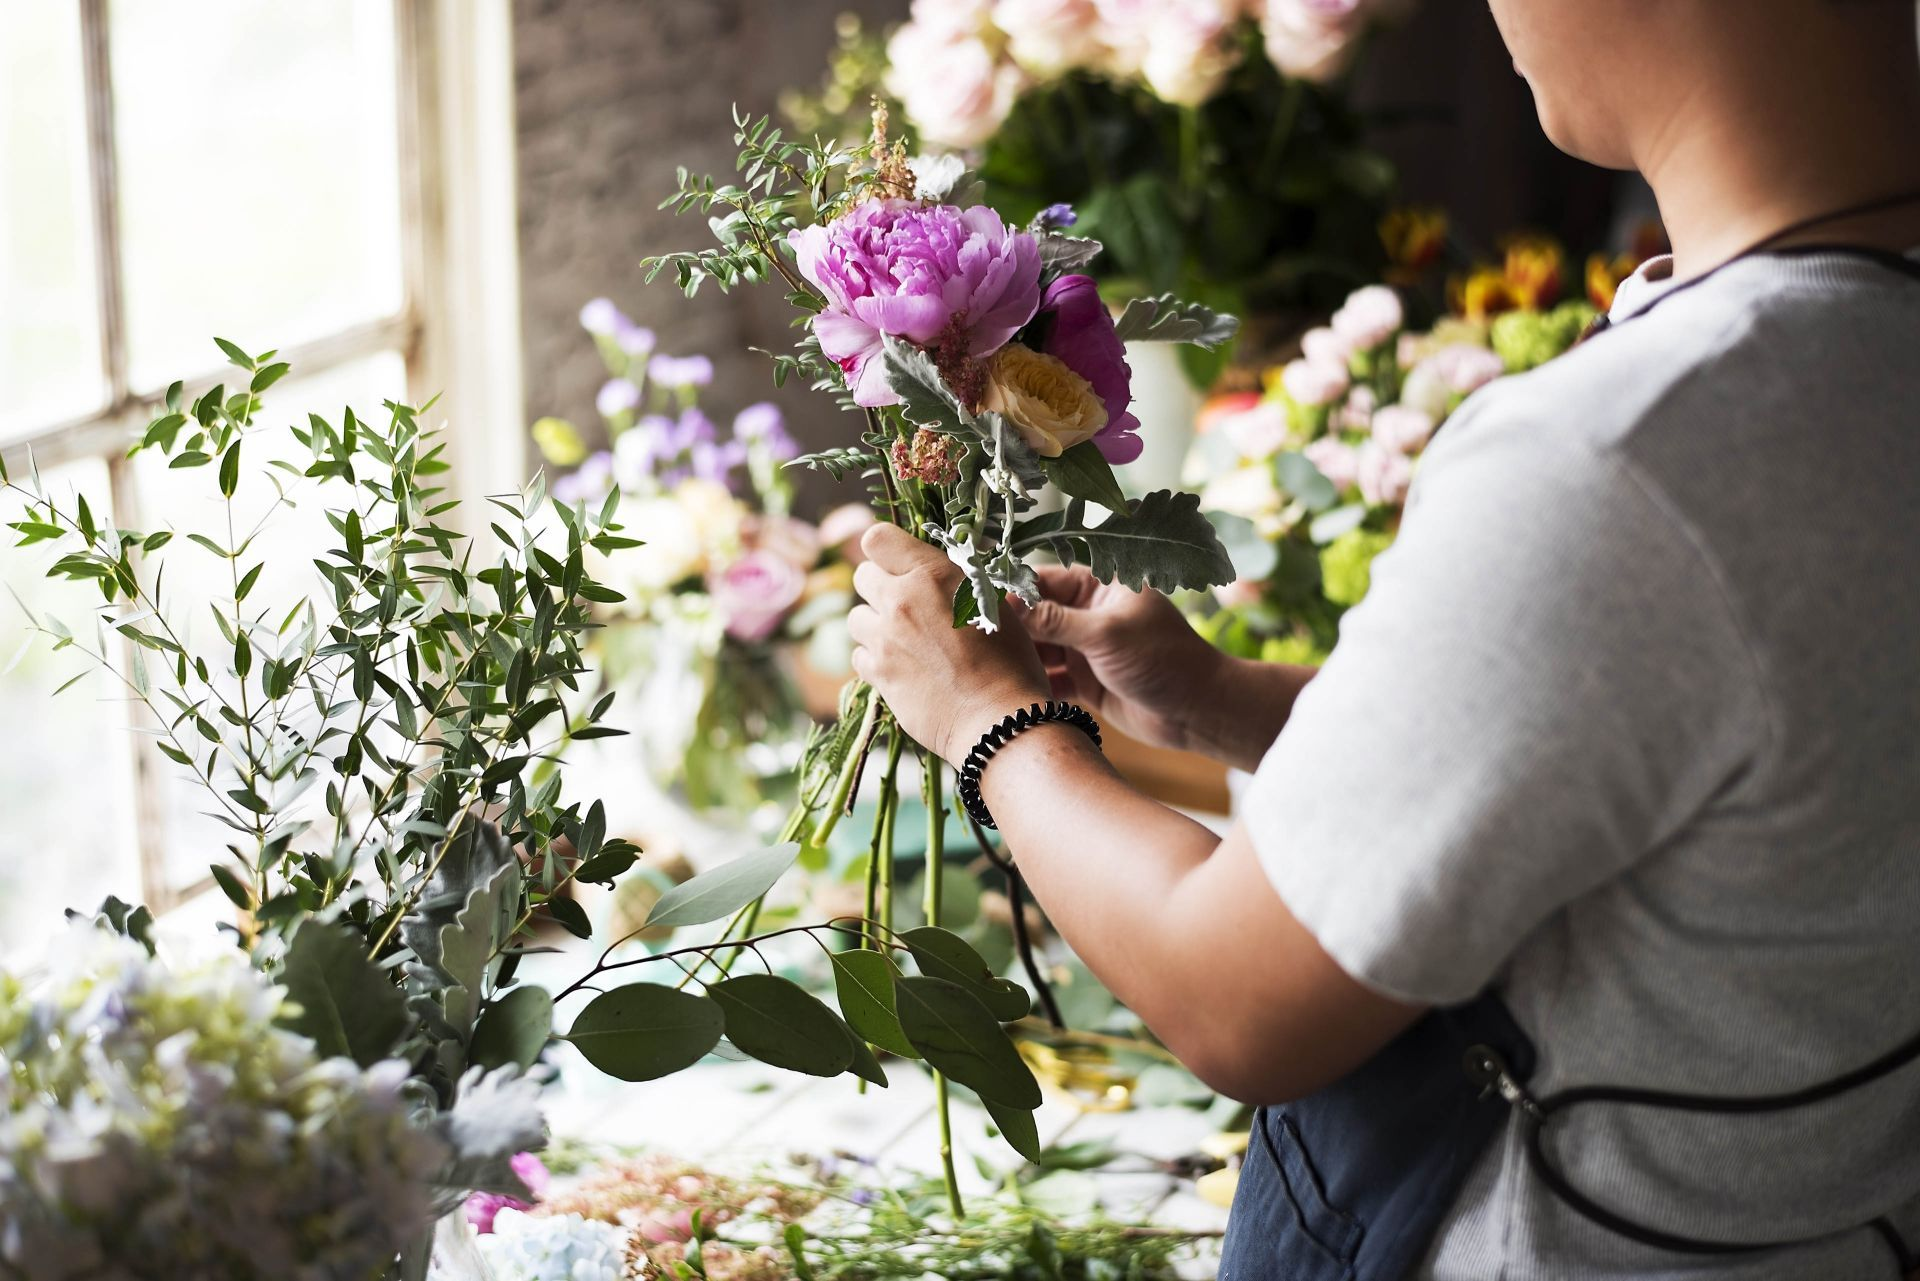 Greece other businesses: Florists